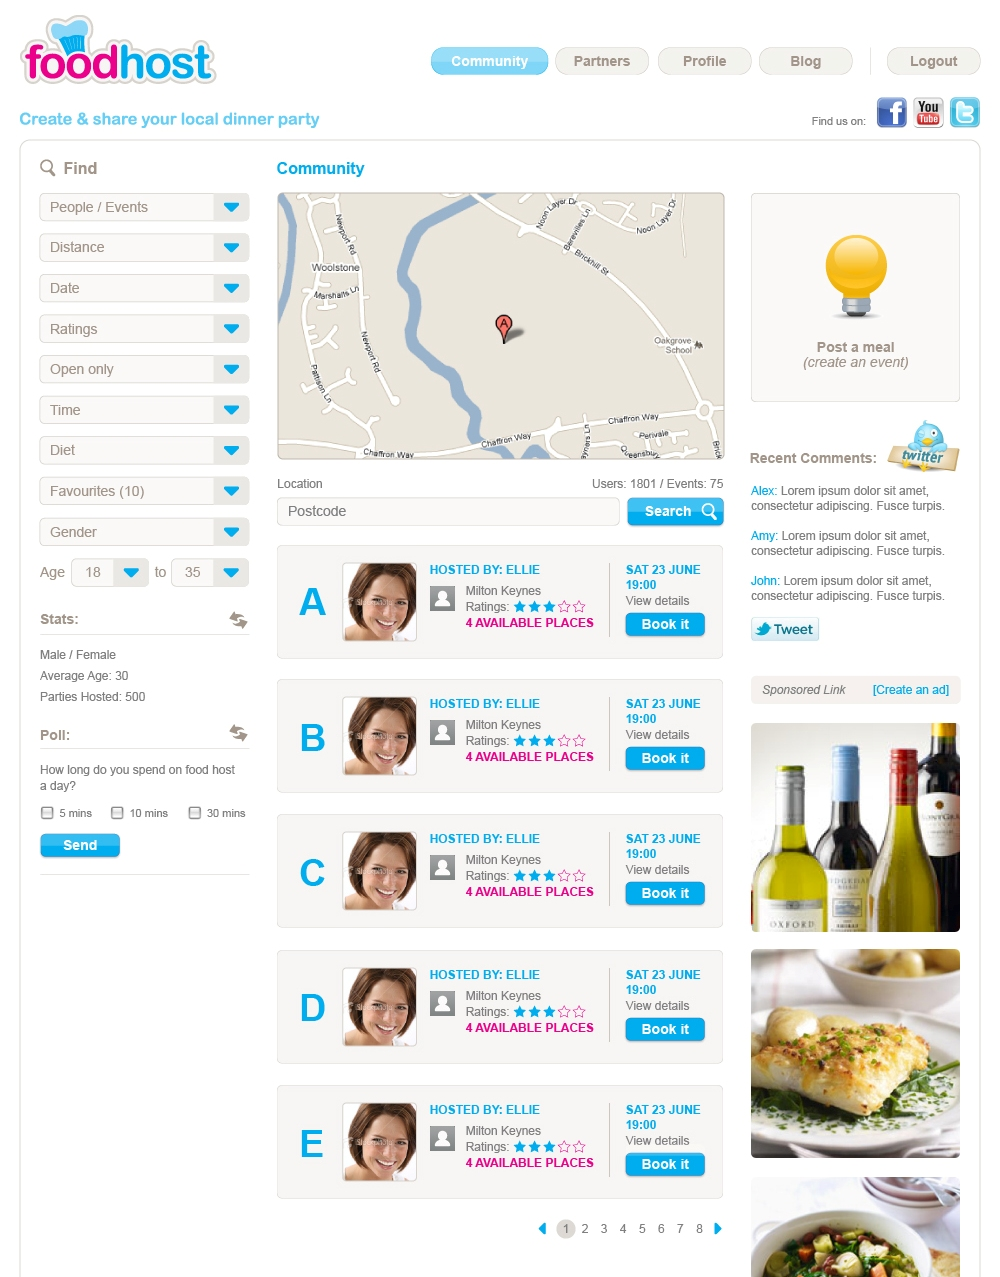 Foodhost11 Foodhost: The online marketplace for dinner parties